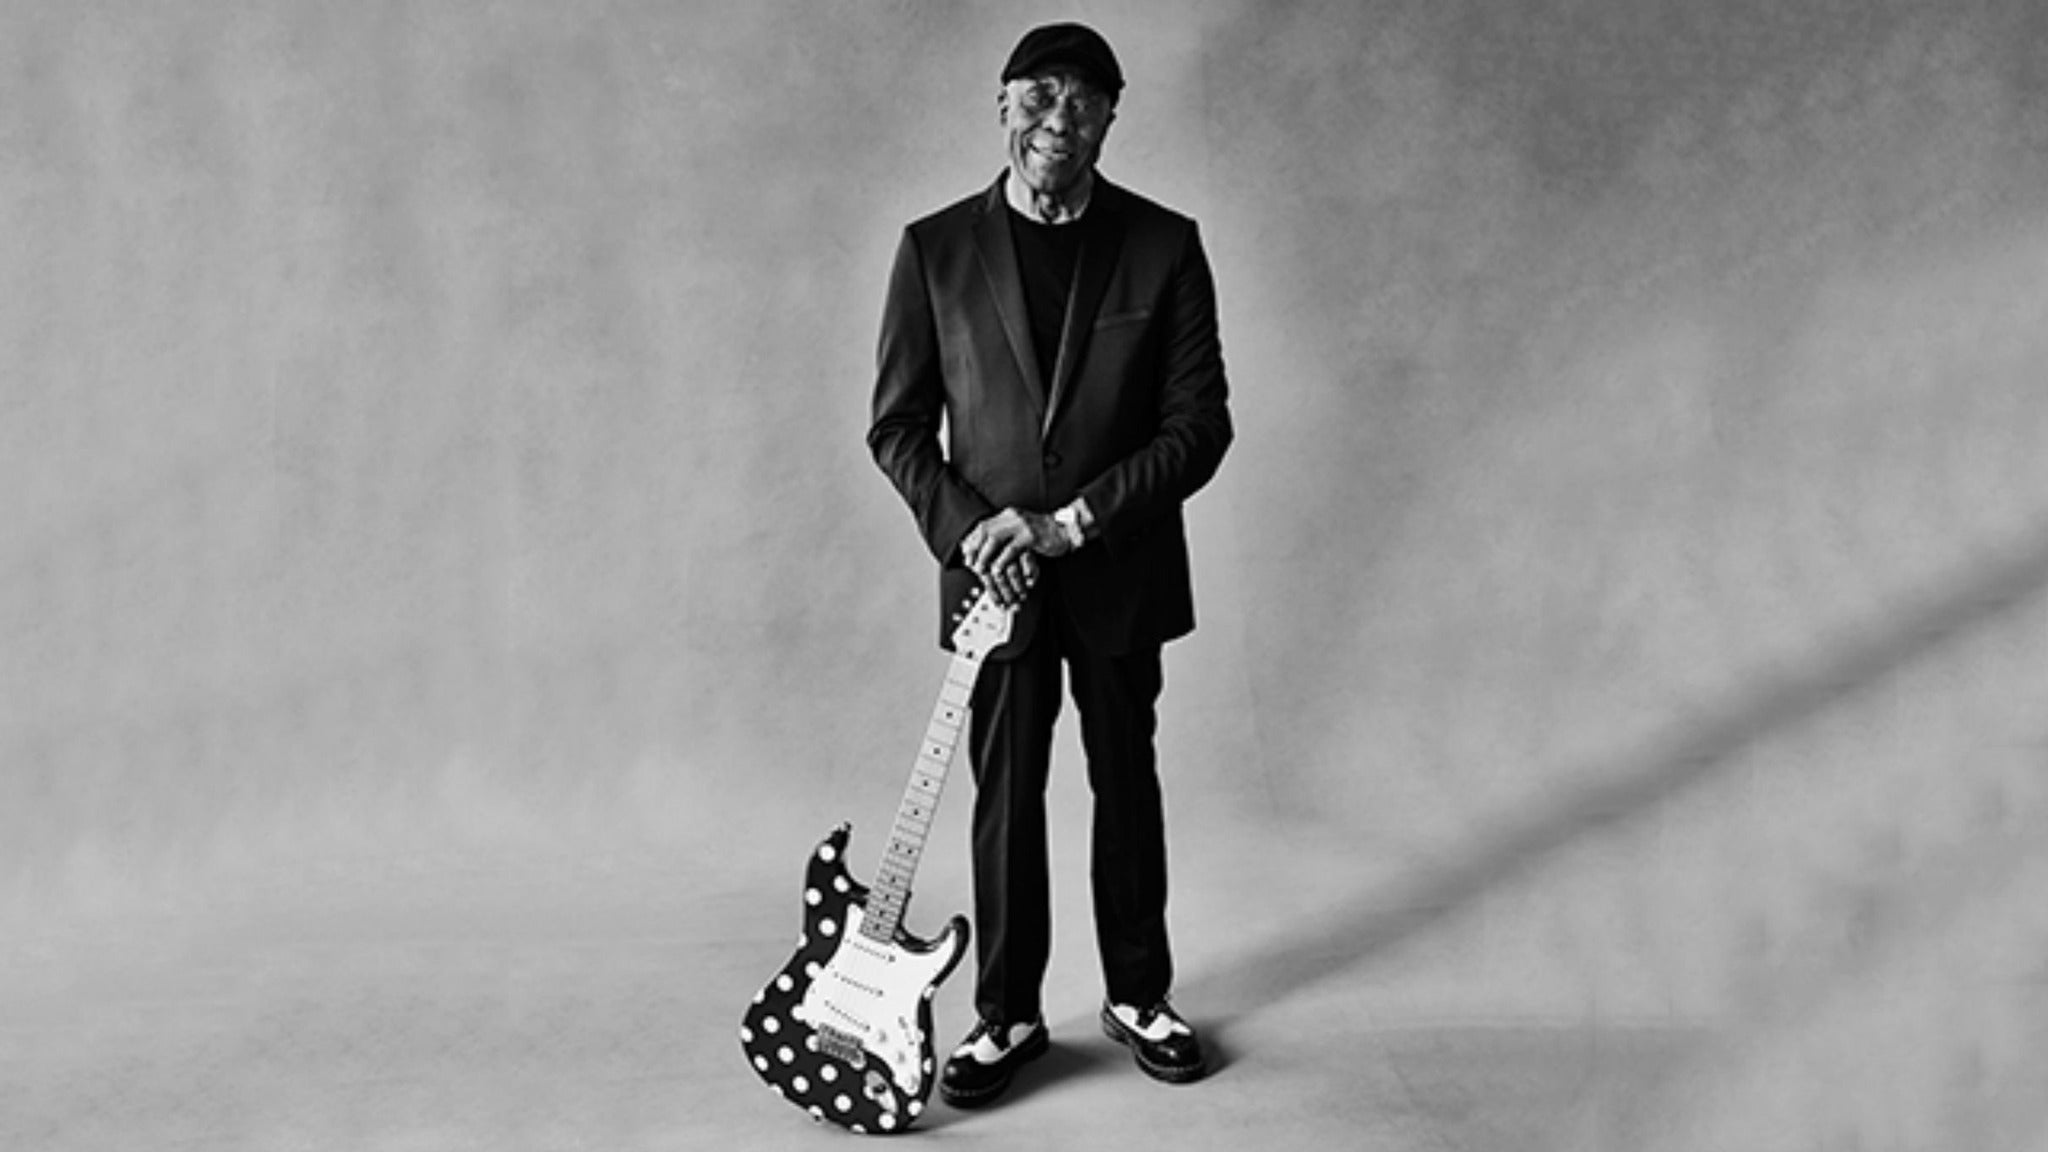 Buddy Guy at Community Arts Center - PA